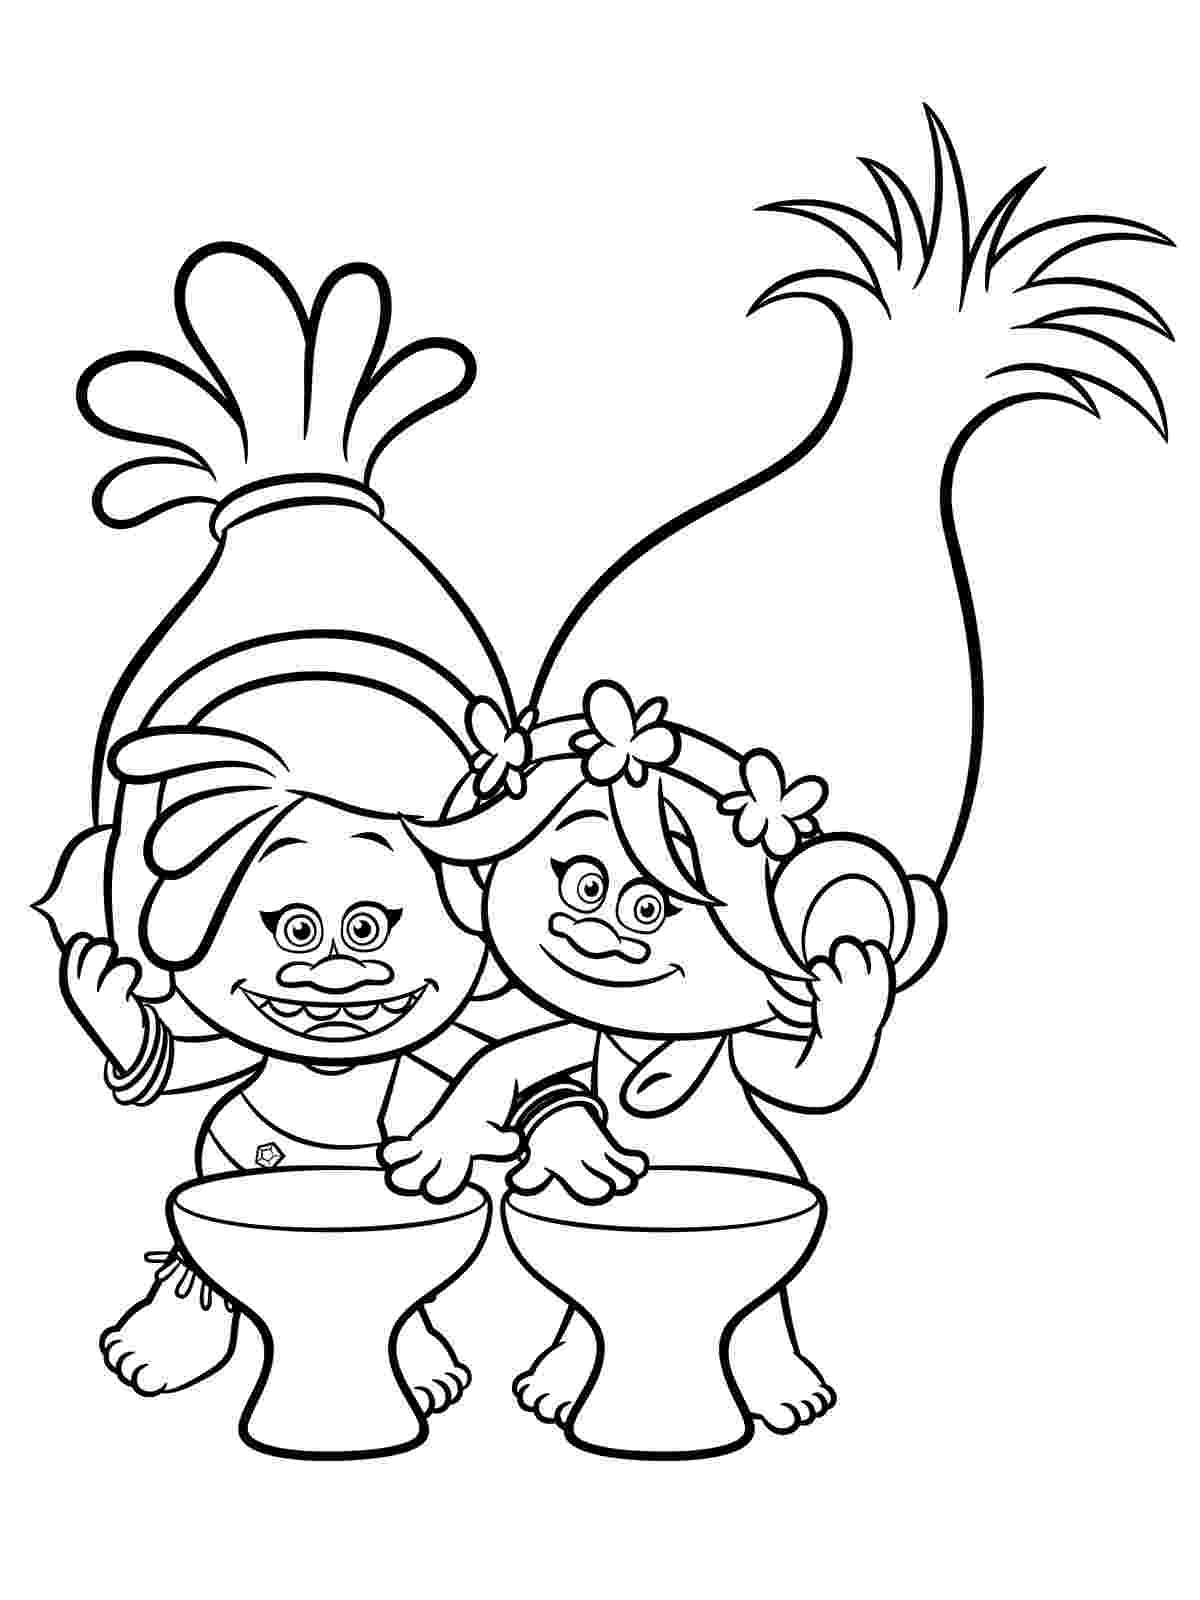 printable coloring pages trolls trolls coloring pages to download and print for free trolls pages printable coloring